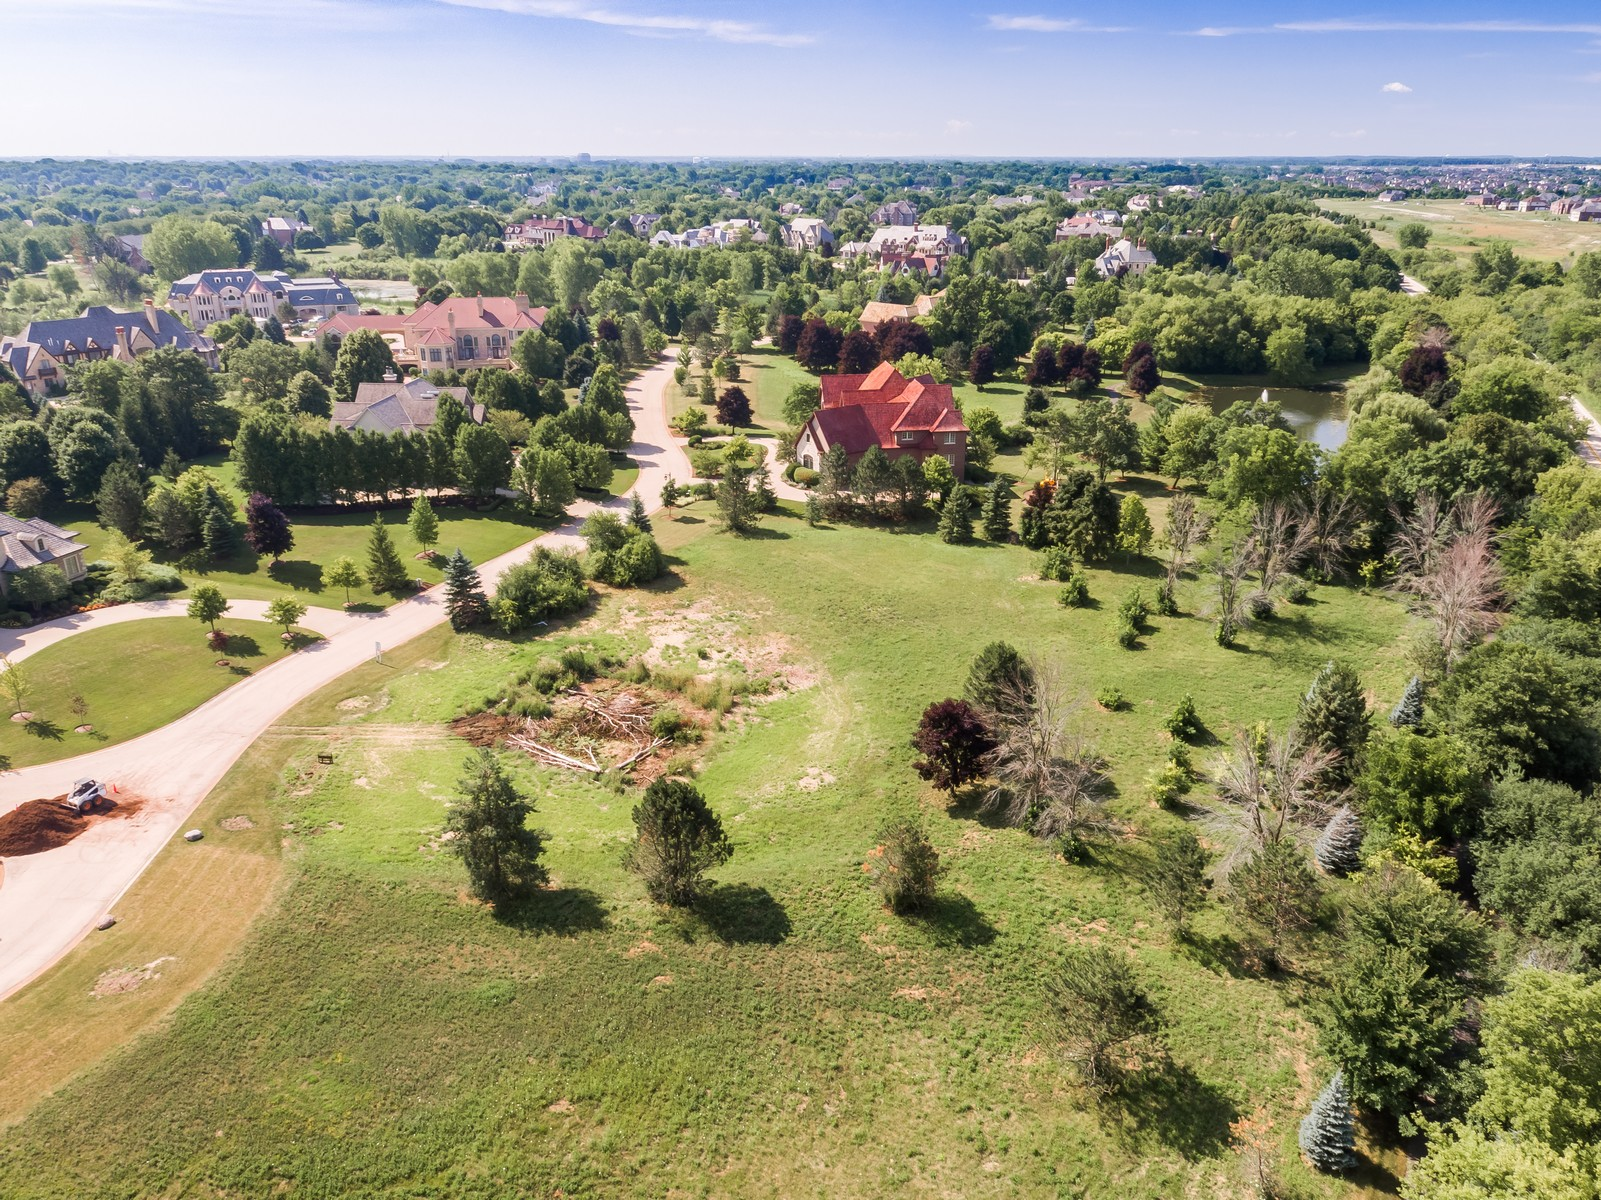 Land for Sale at Incredible 1.3 Acre Estate Lot in Hidden Lakes 18 Brooke Lane Lot 32 South Barrington, Illinois 60010 United States